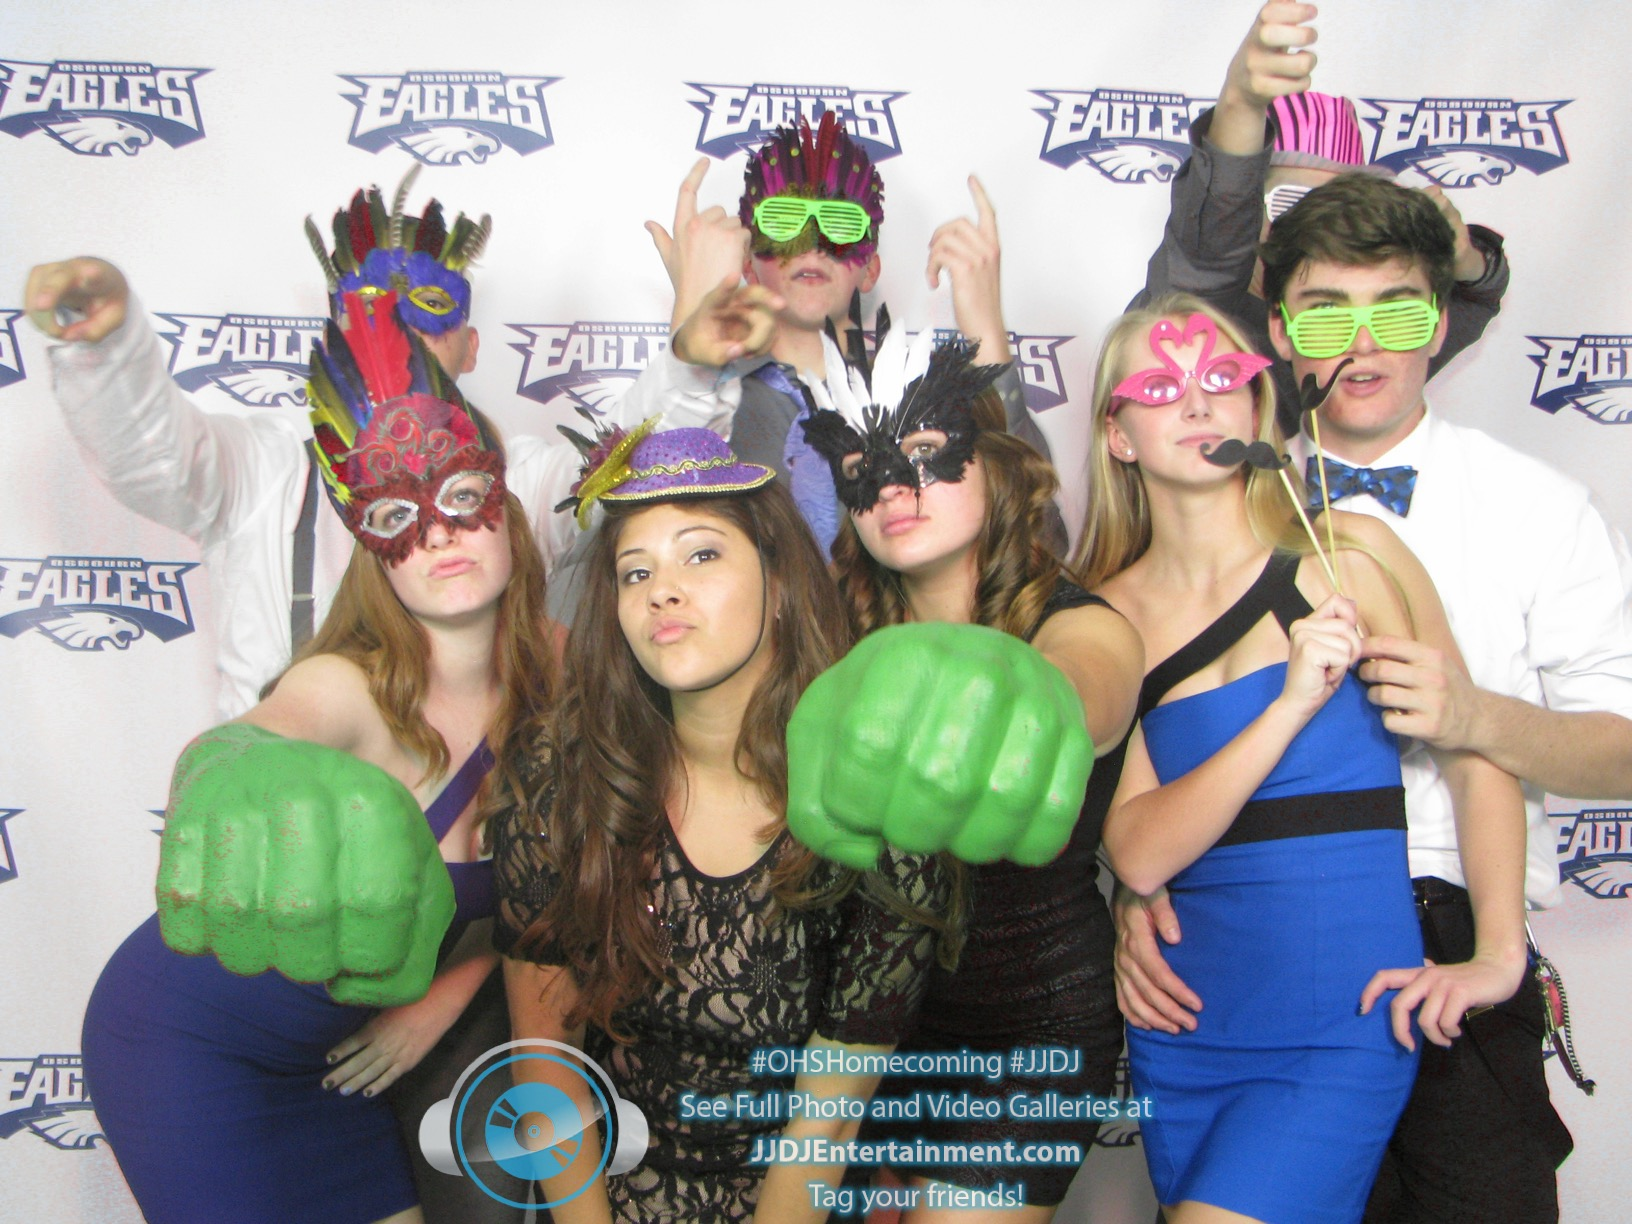 OHS 2014 Homecoming Photobooth -269